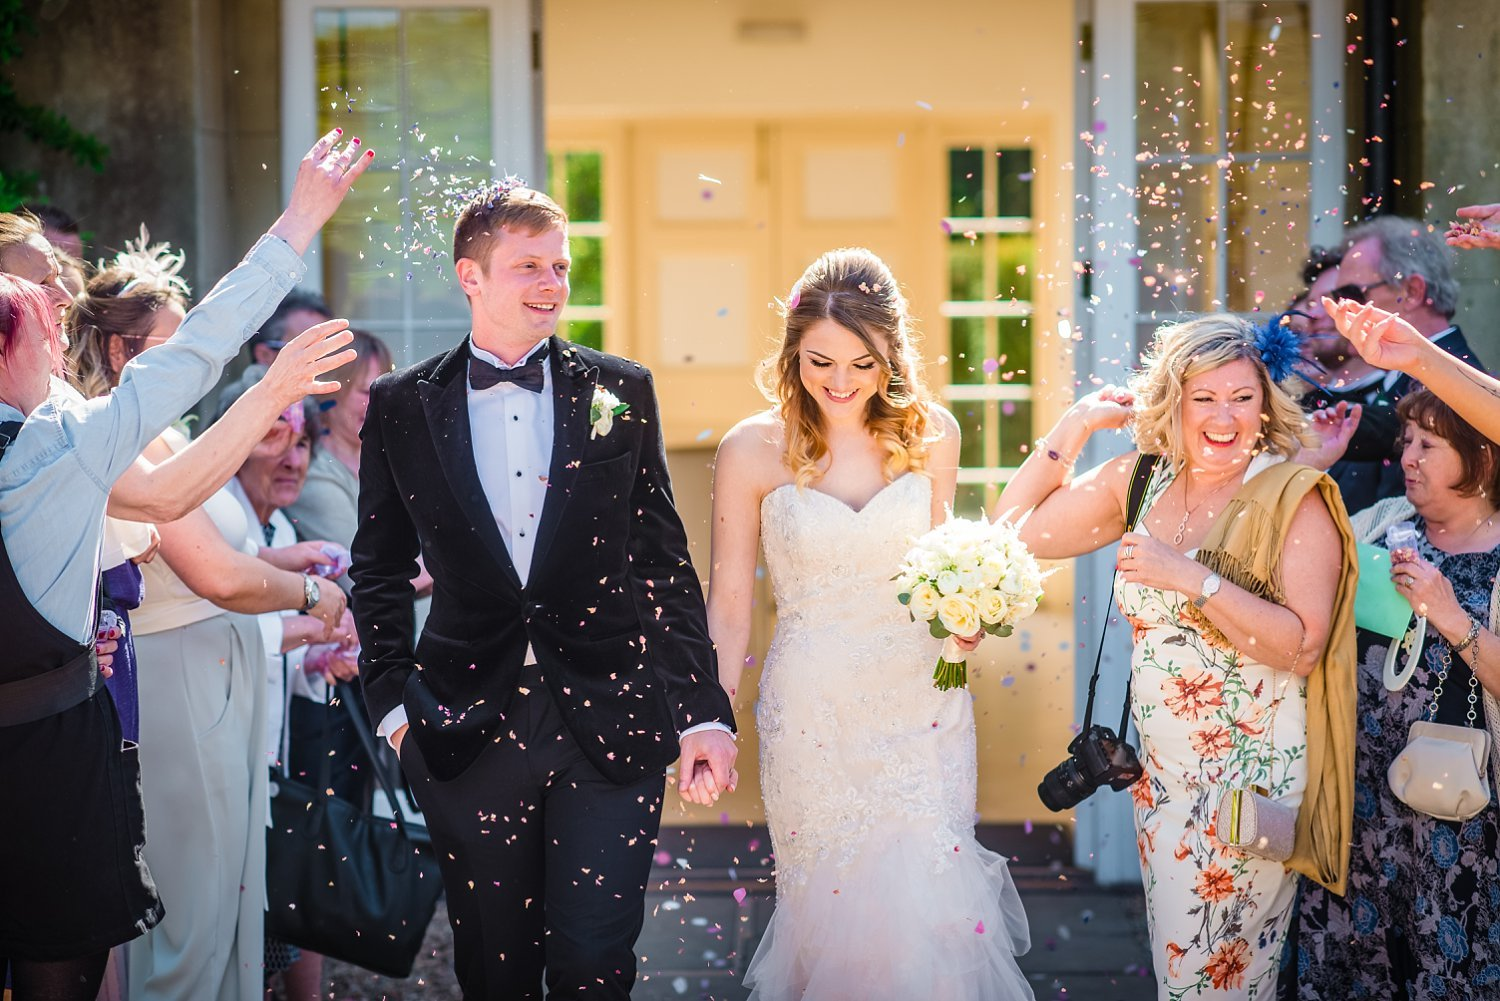 Northbrook Park Wedding - confetti photo. bride and groom are walking as their guests throw confetti at them